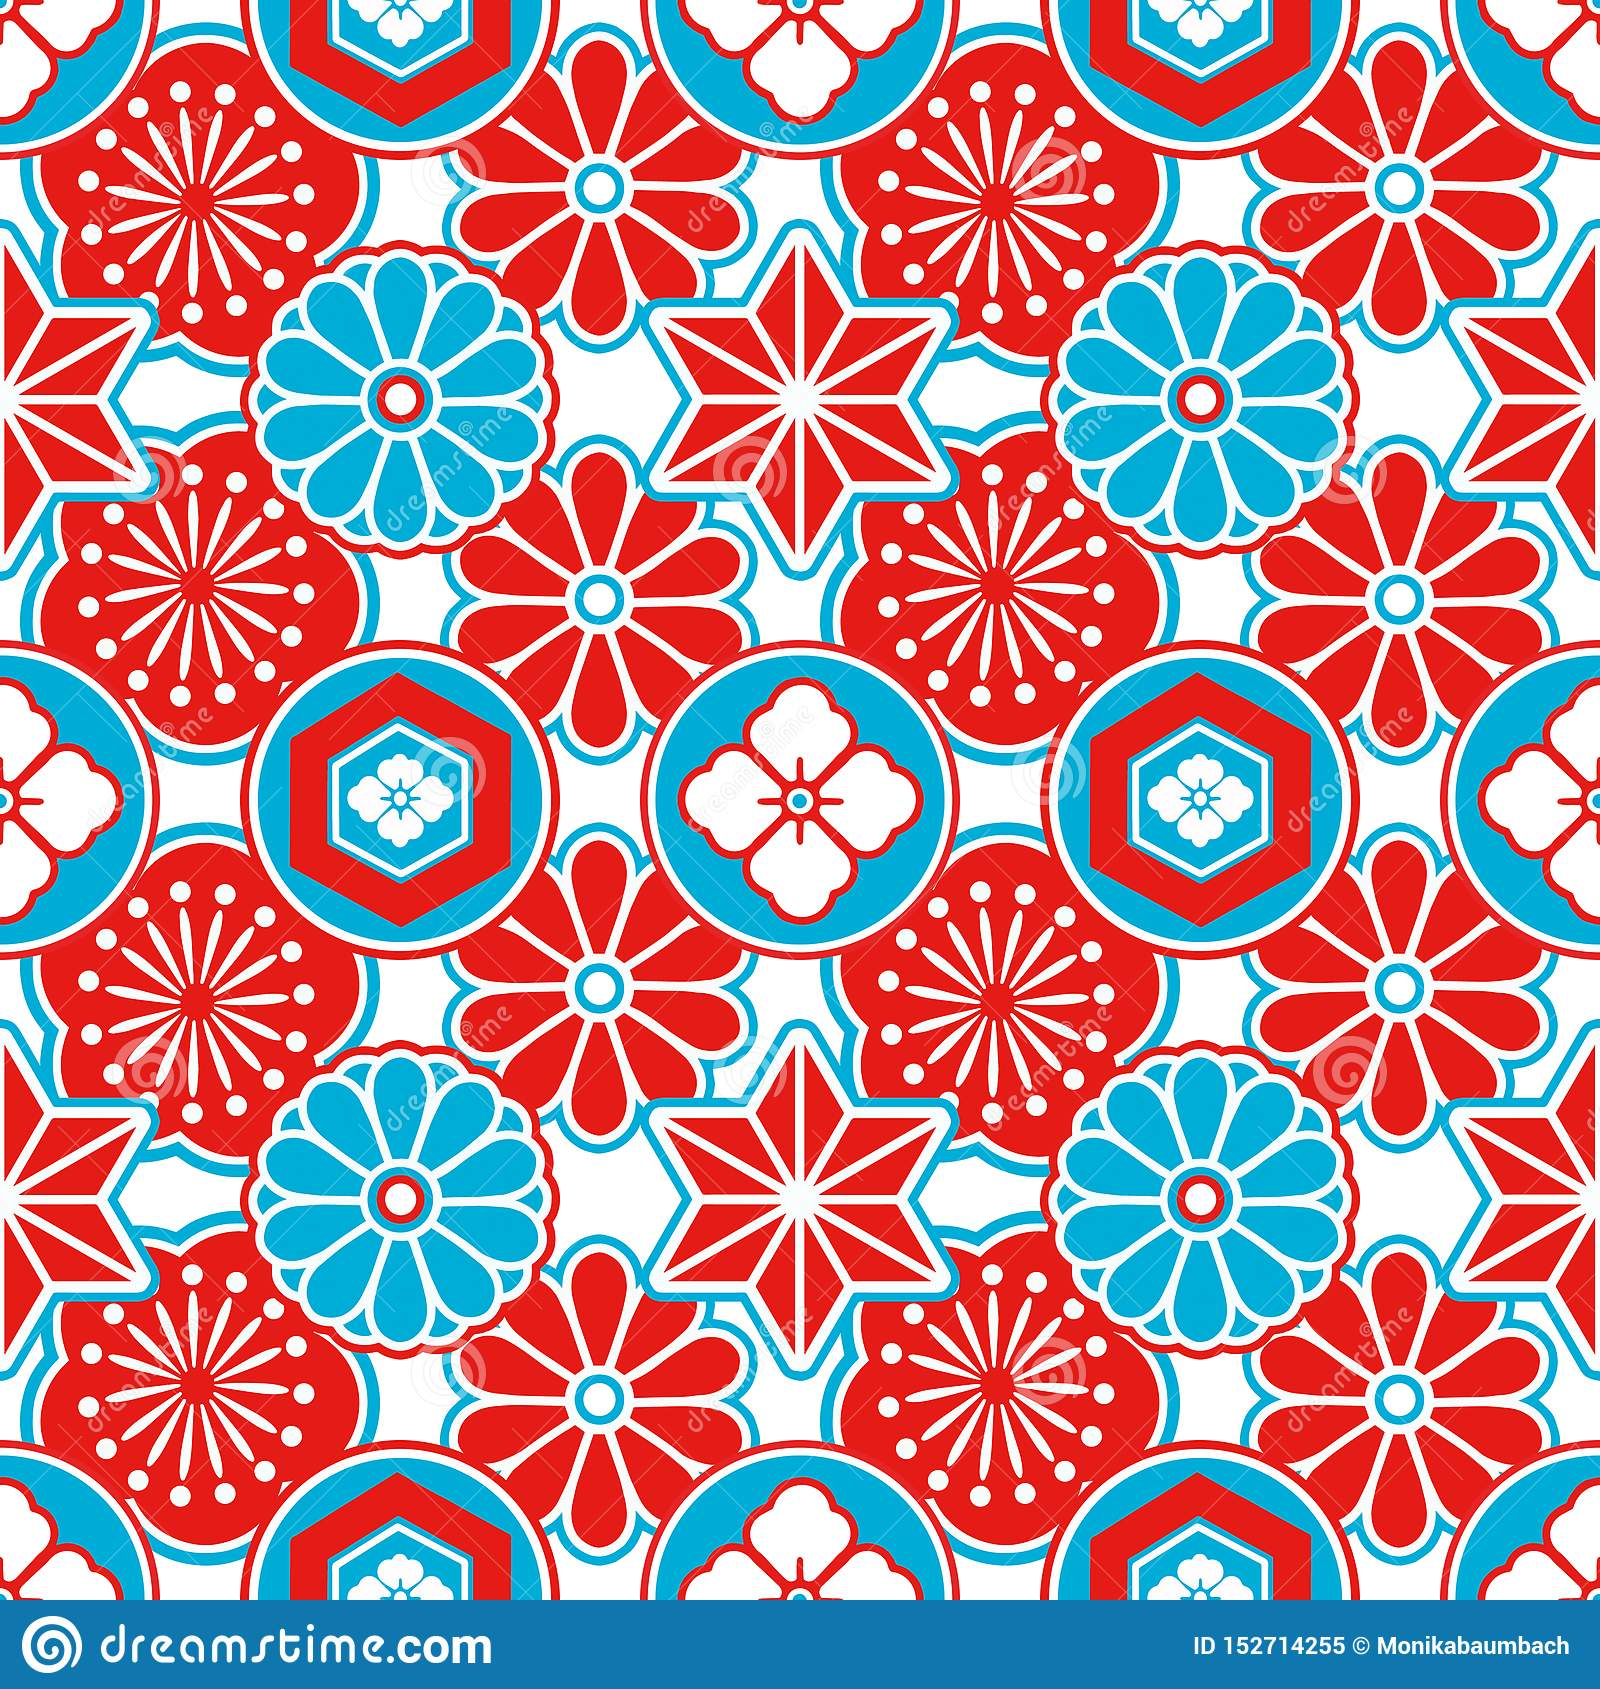 Asia style seamless pattern with red and blue Japanese ornamental flowers and geometrical elements on white background